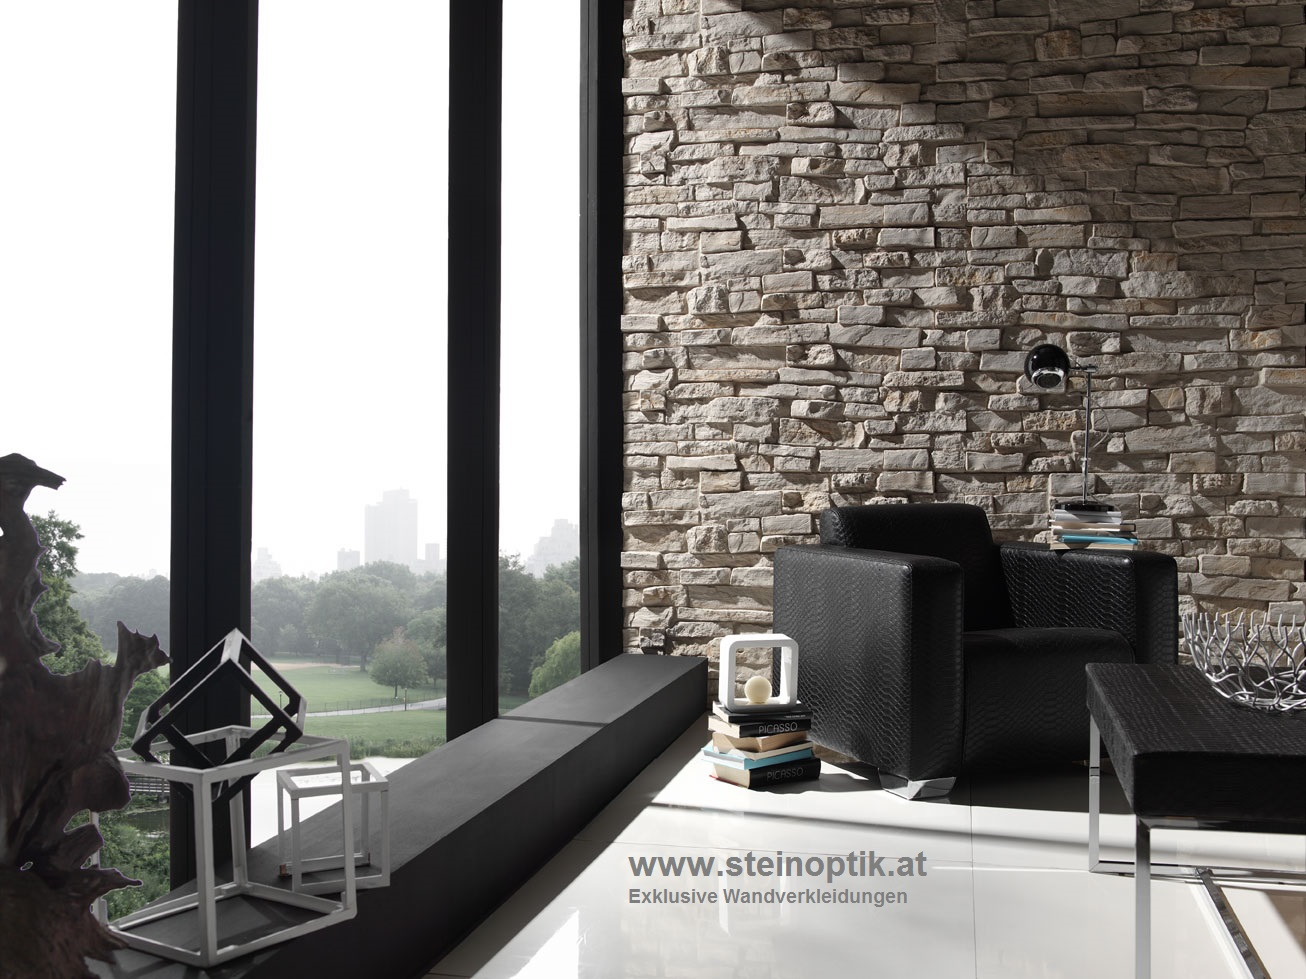 steinoptik paneele z une sichtschutzelemente im onlineshop. Black Bedroom Furniture Sets. Home Design Ideas